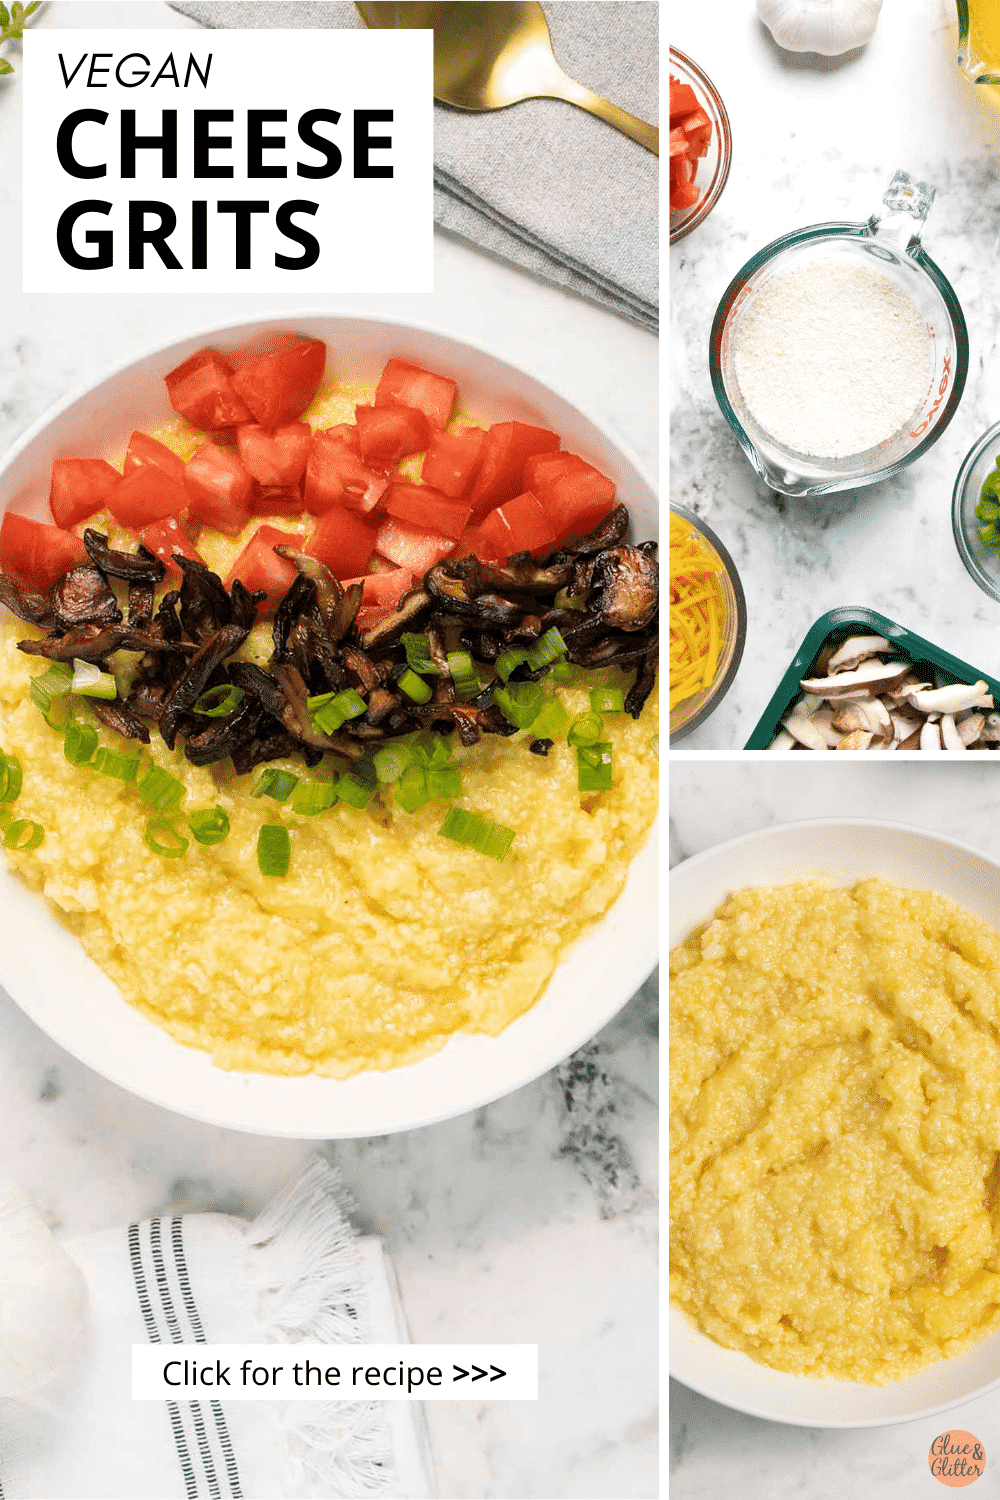 image collage of vegan cheese grits, an ingredients photo, and a close-up of the grits to show the texture